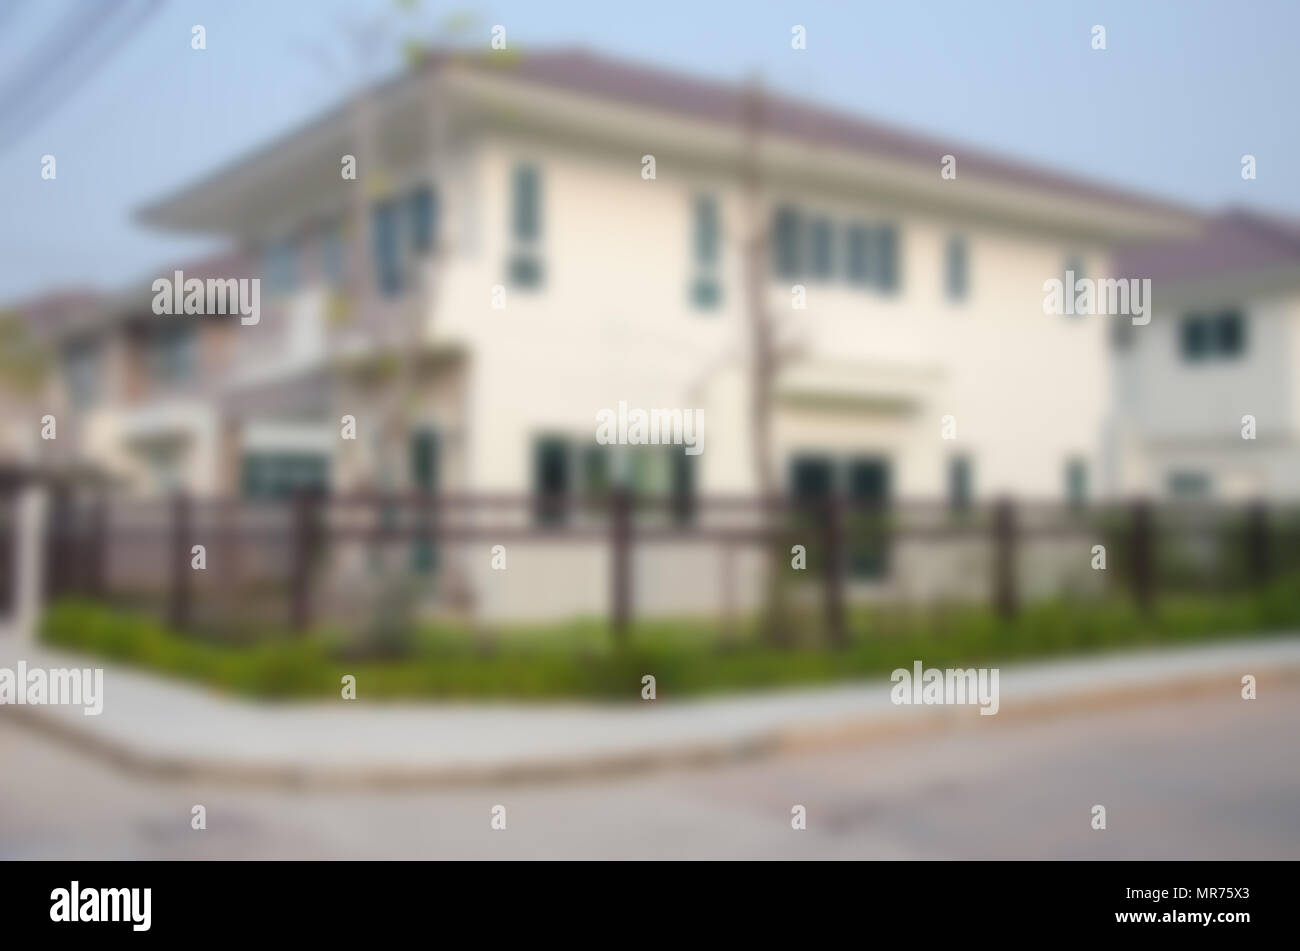 blur image of house for background usage Stock Photo